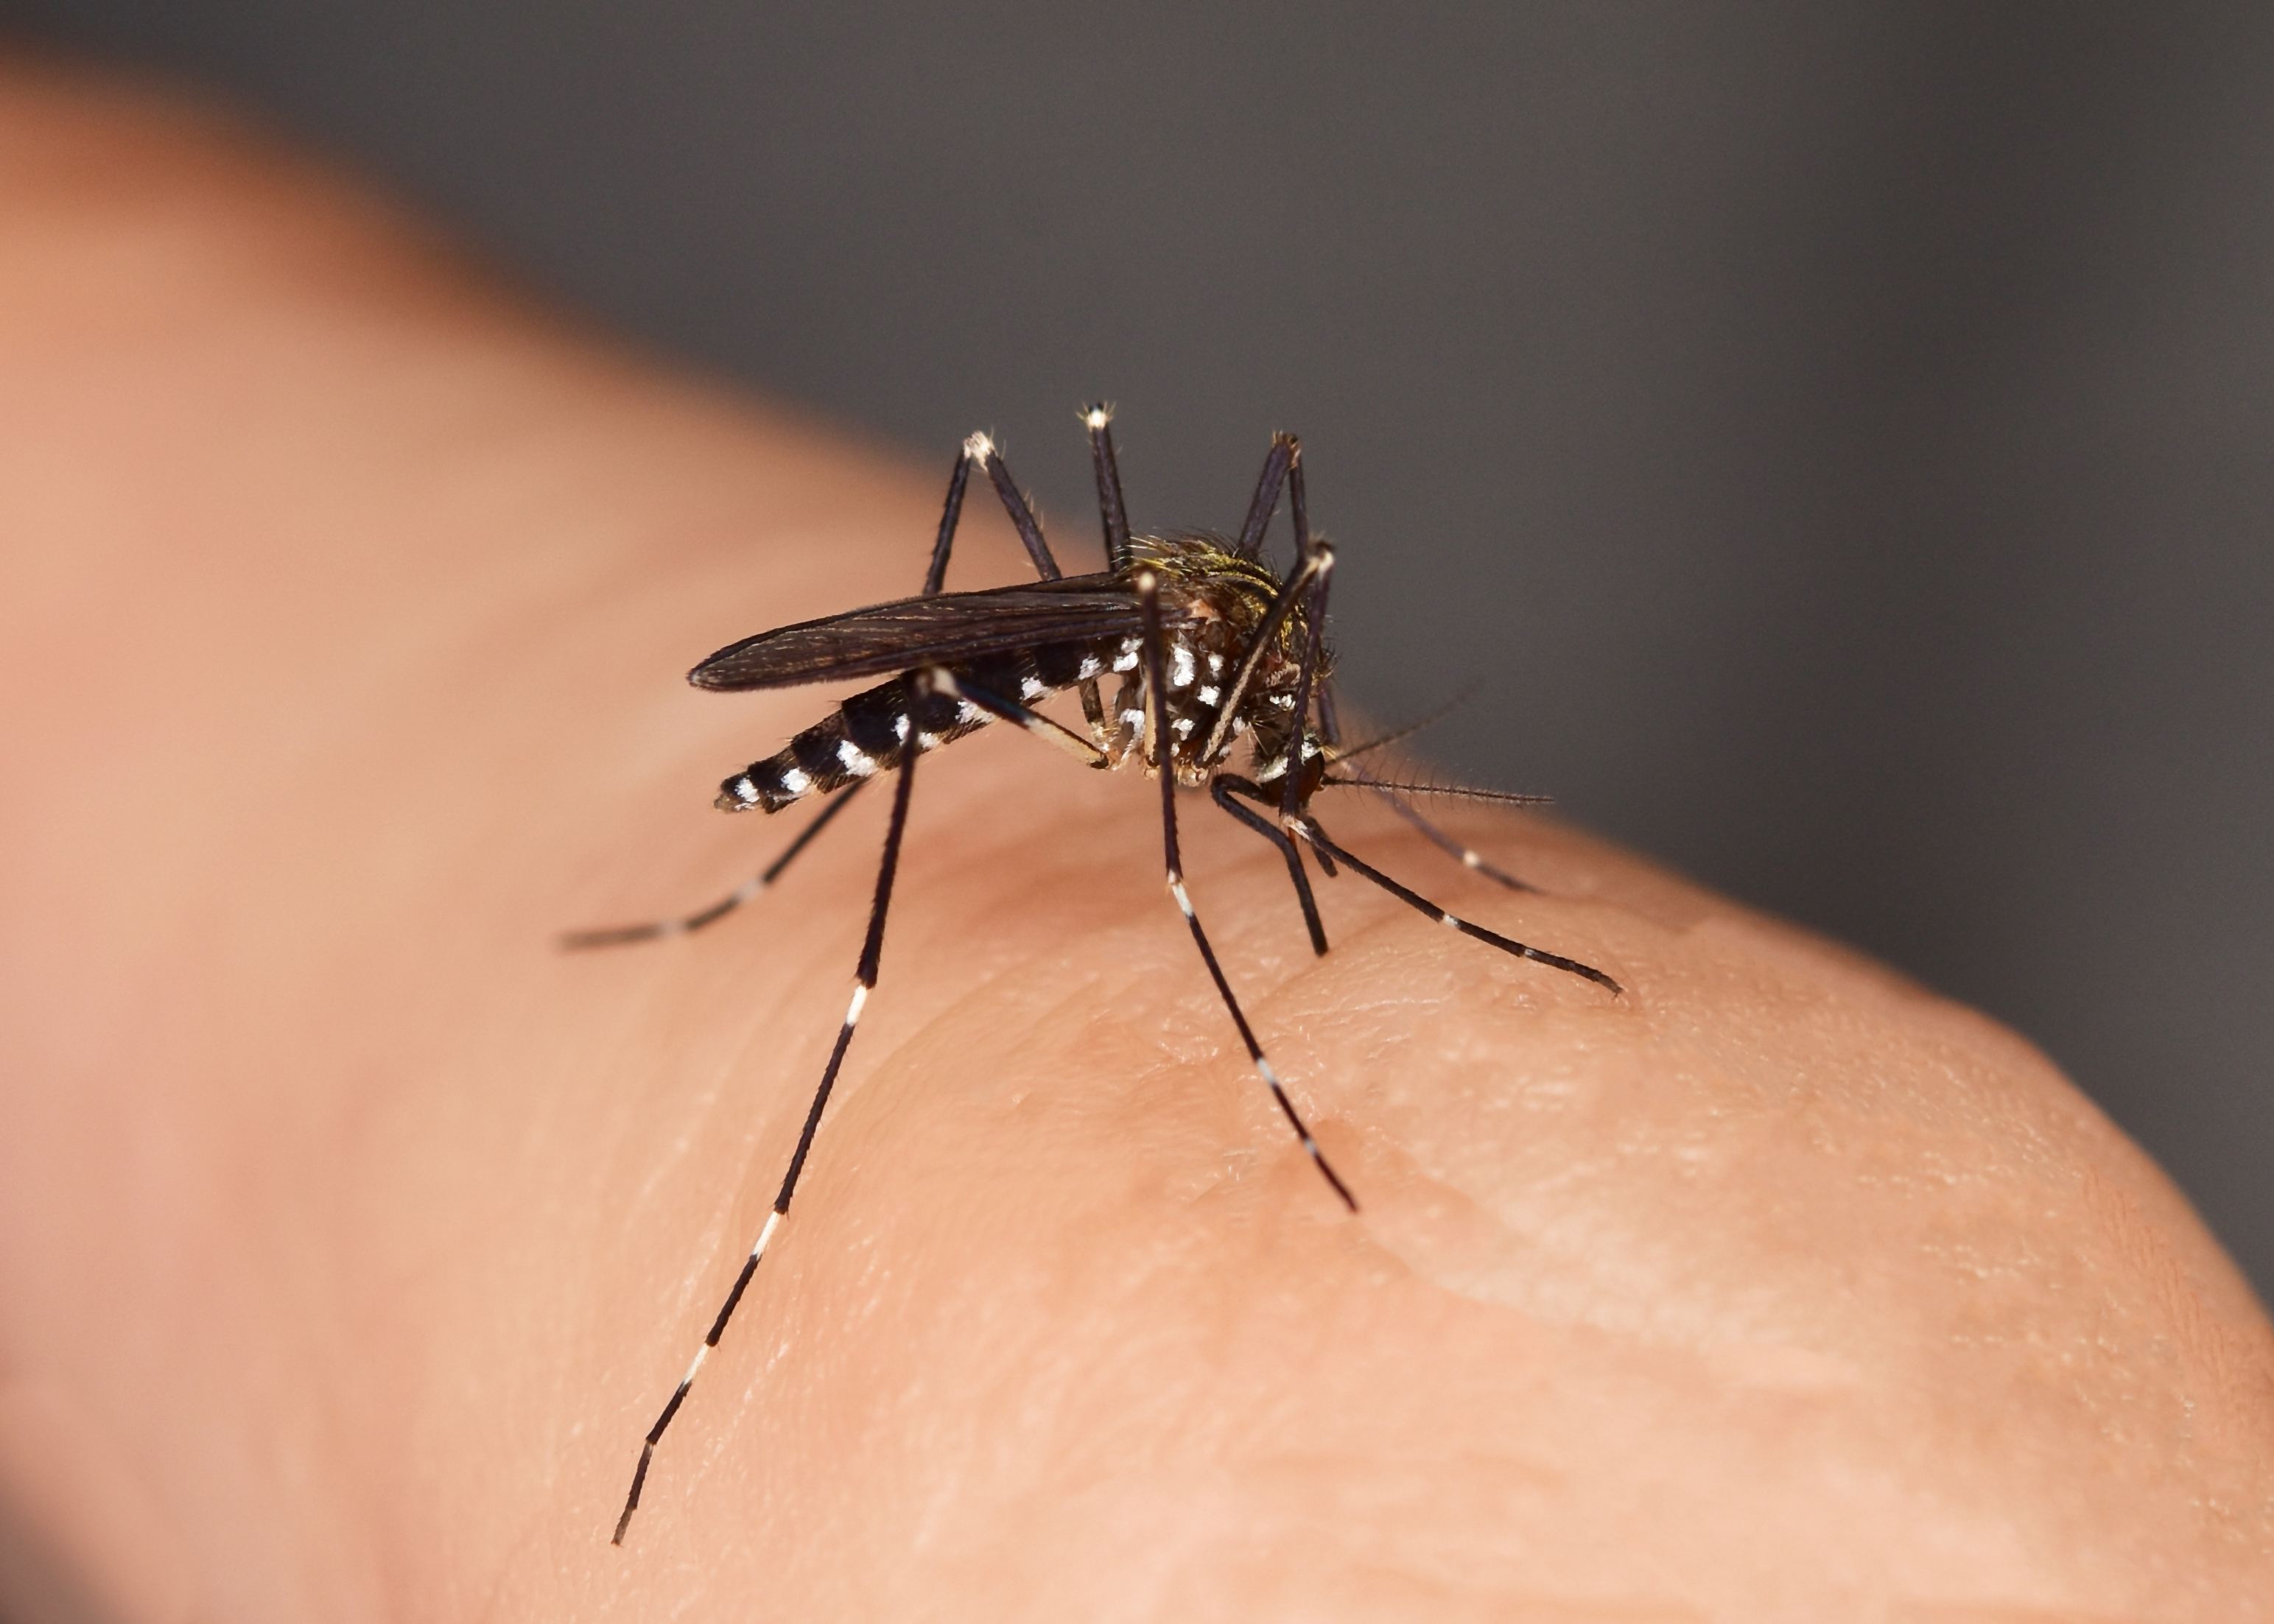 Mosquito sucking blood from a human. (Getty Images)